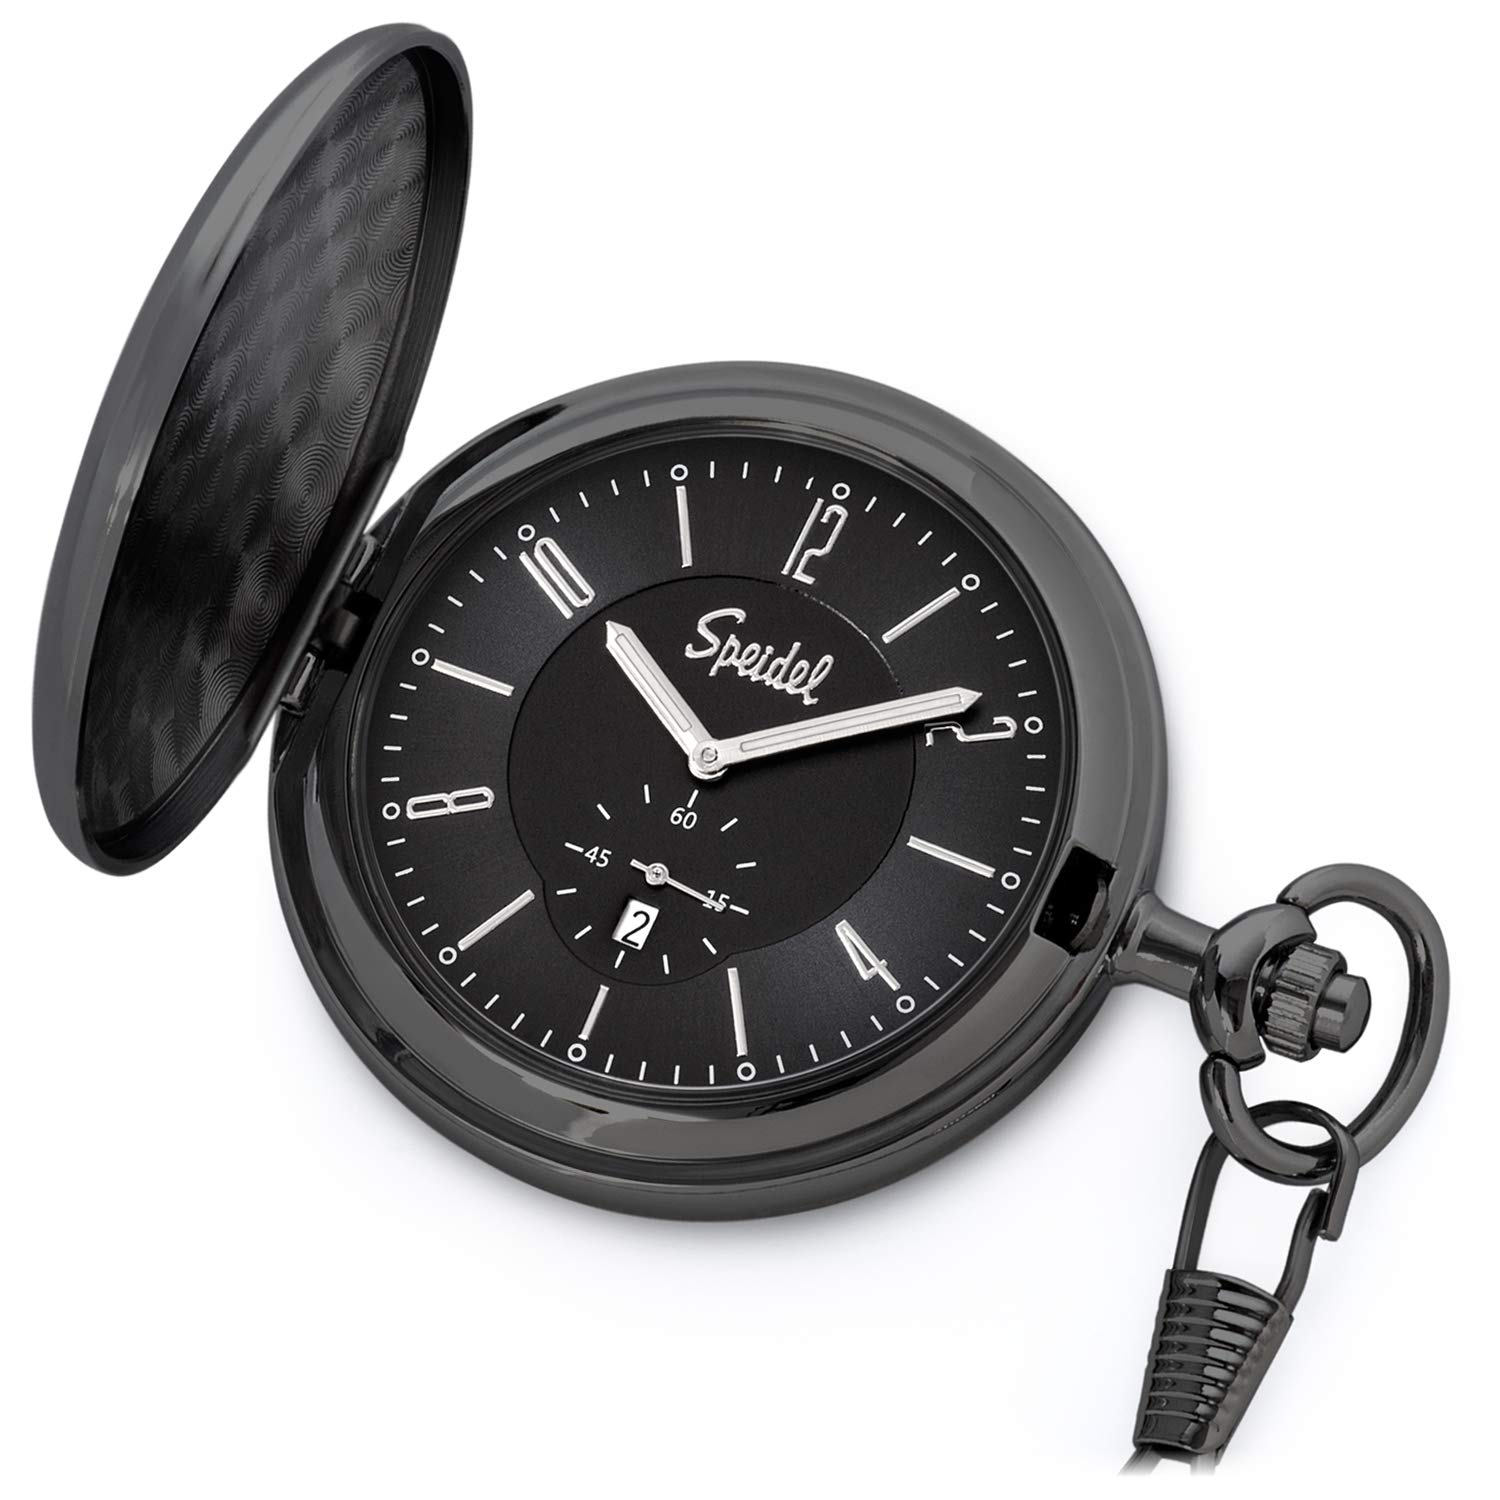 Speidel Classic Brushed Satin Black Engravable Pocket Watch with 14'' Chain, Black Dial, Date Window, Seconds Sub-Dial and Luminous Hands